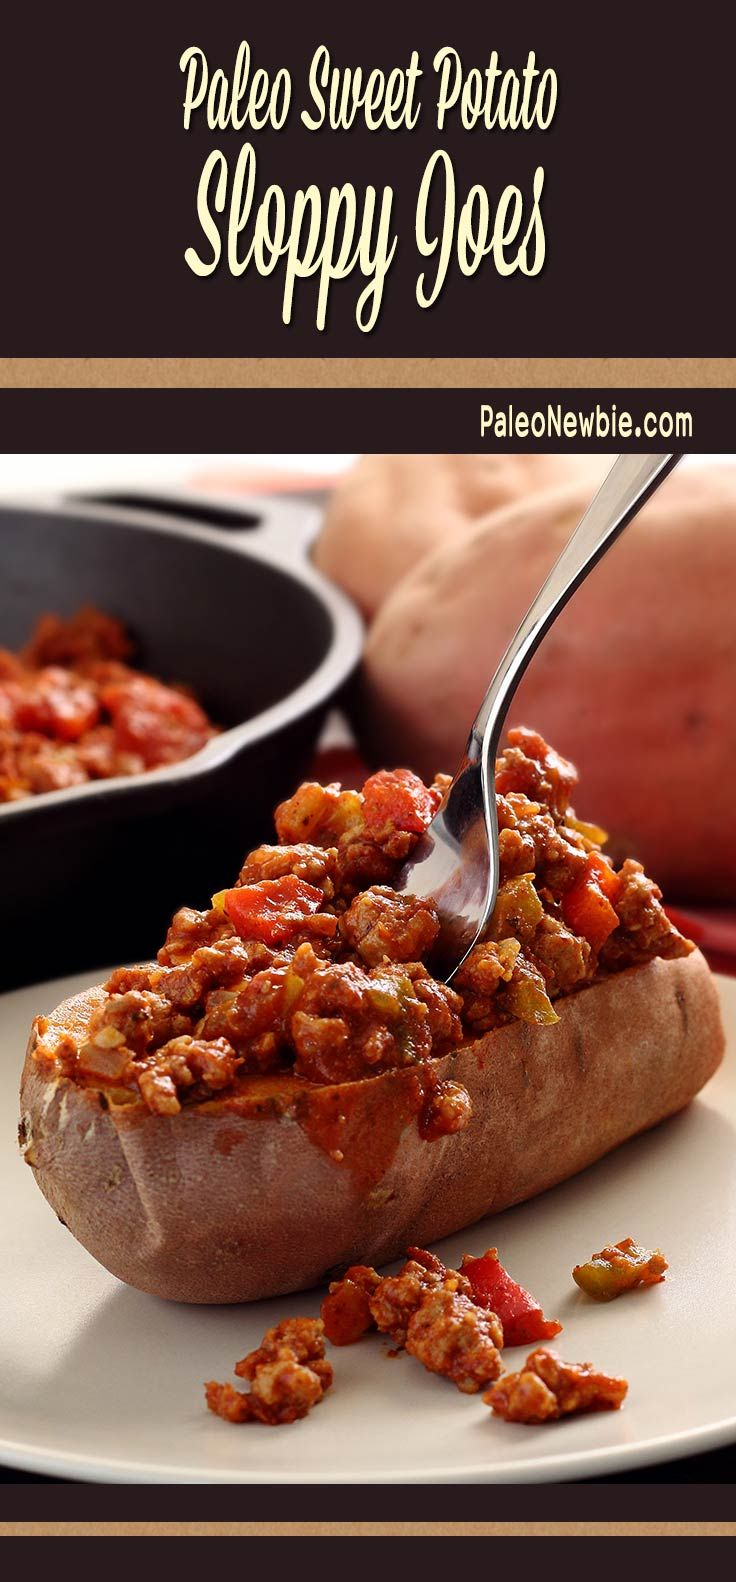 No beauty, but beast of a meal…baked sweet potatoes with a hearty, veggie-infused sloppy joe mix. #paleo #glutenfree